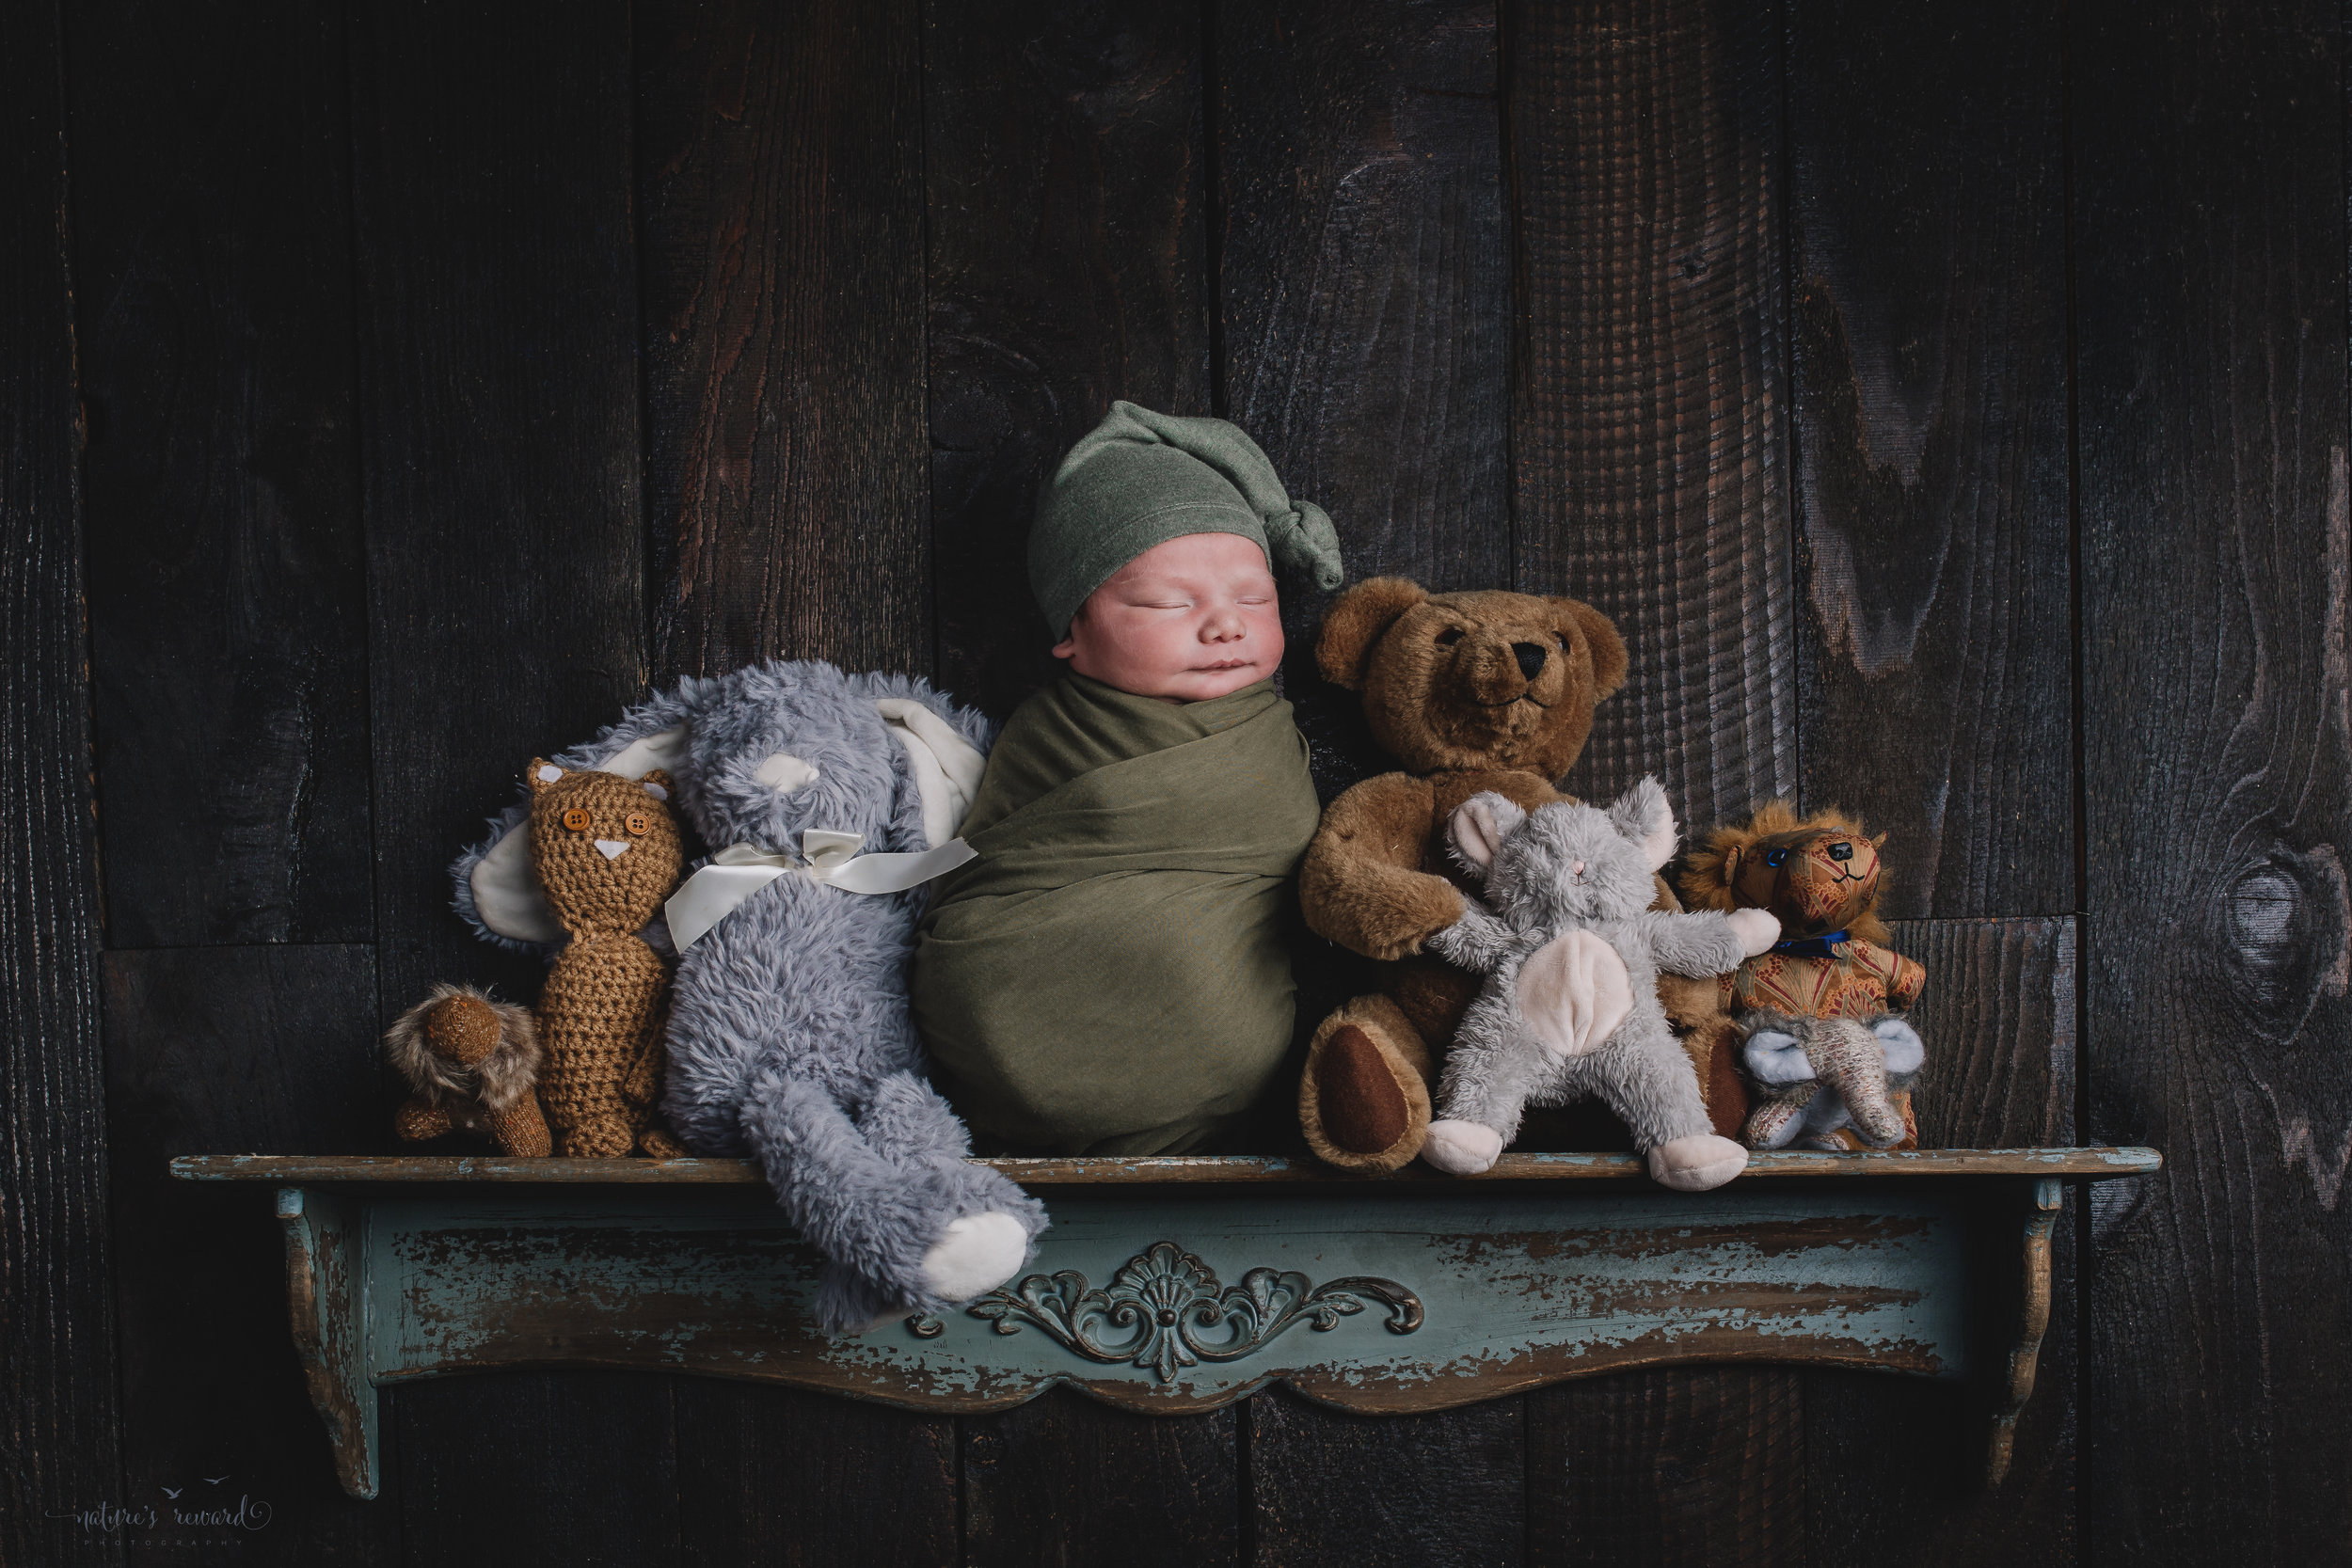 A newborn baby boy on a shelf with stuffed animals keeping him company- a portrait by Nature's Reward Photography